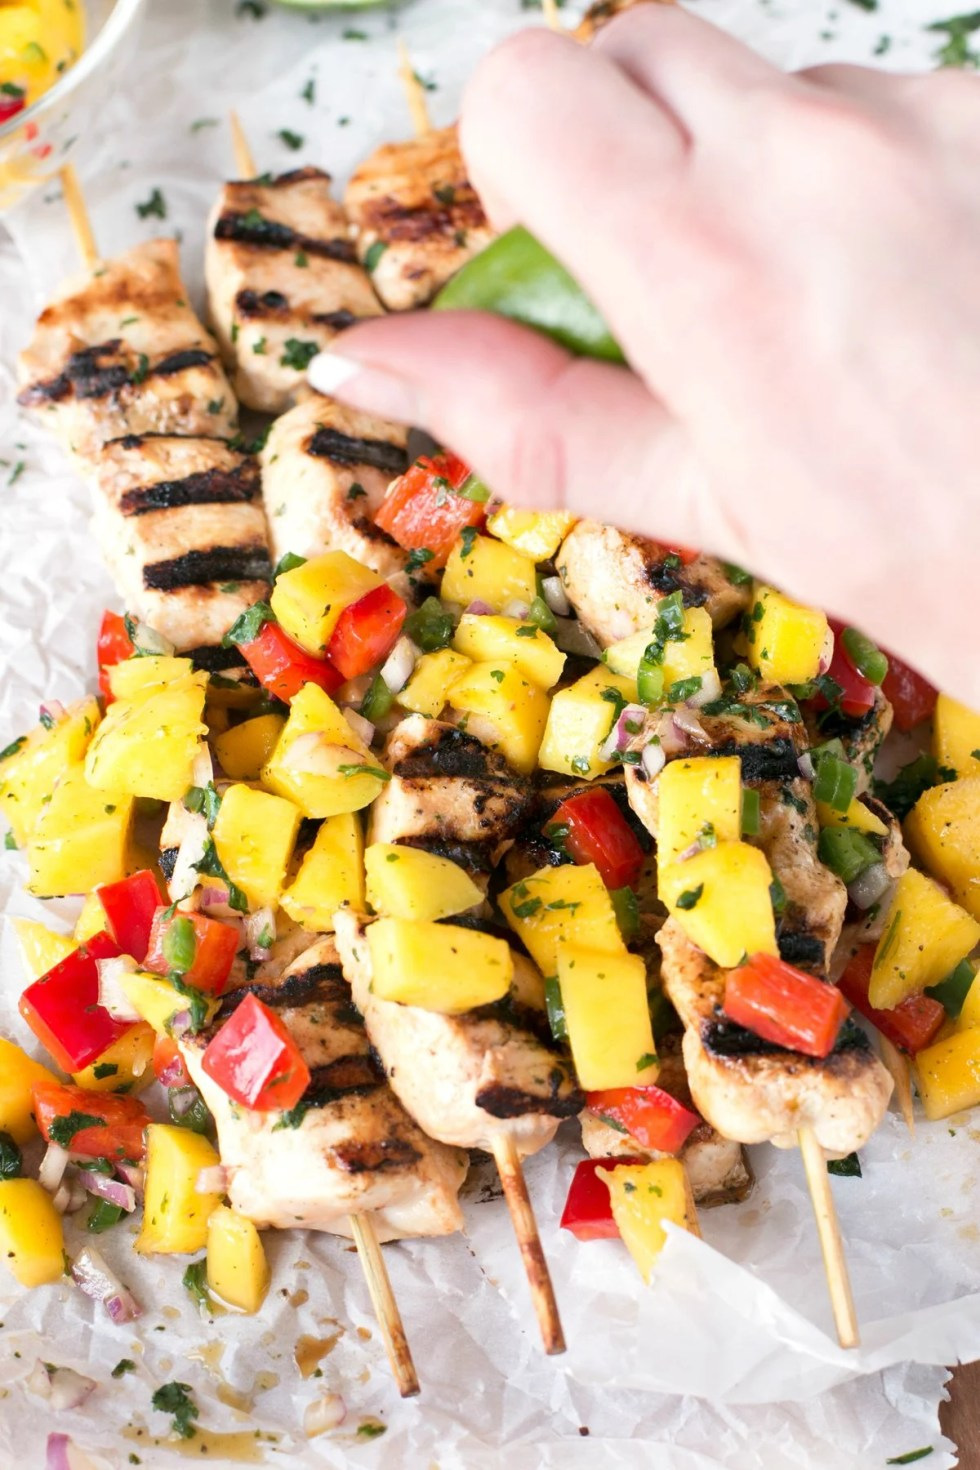 Mango chicken topped with mango salsa and a hand squeezing fresh lime on top